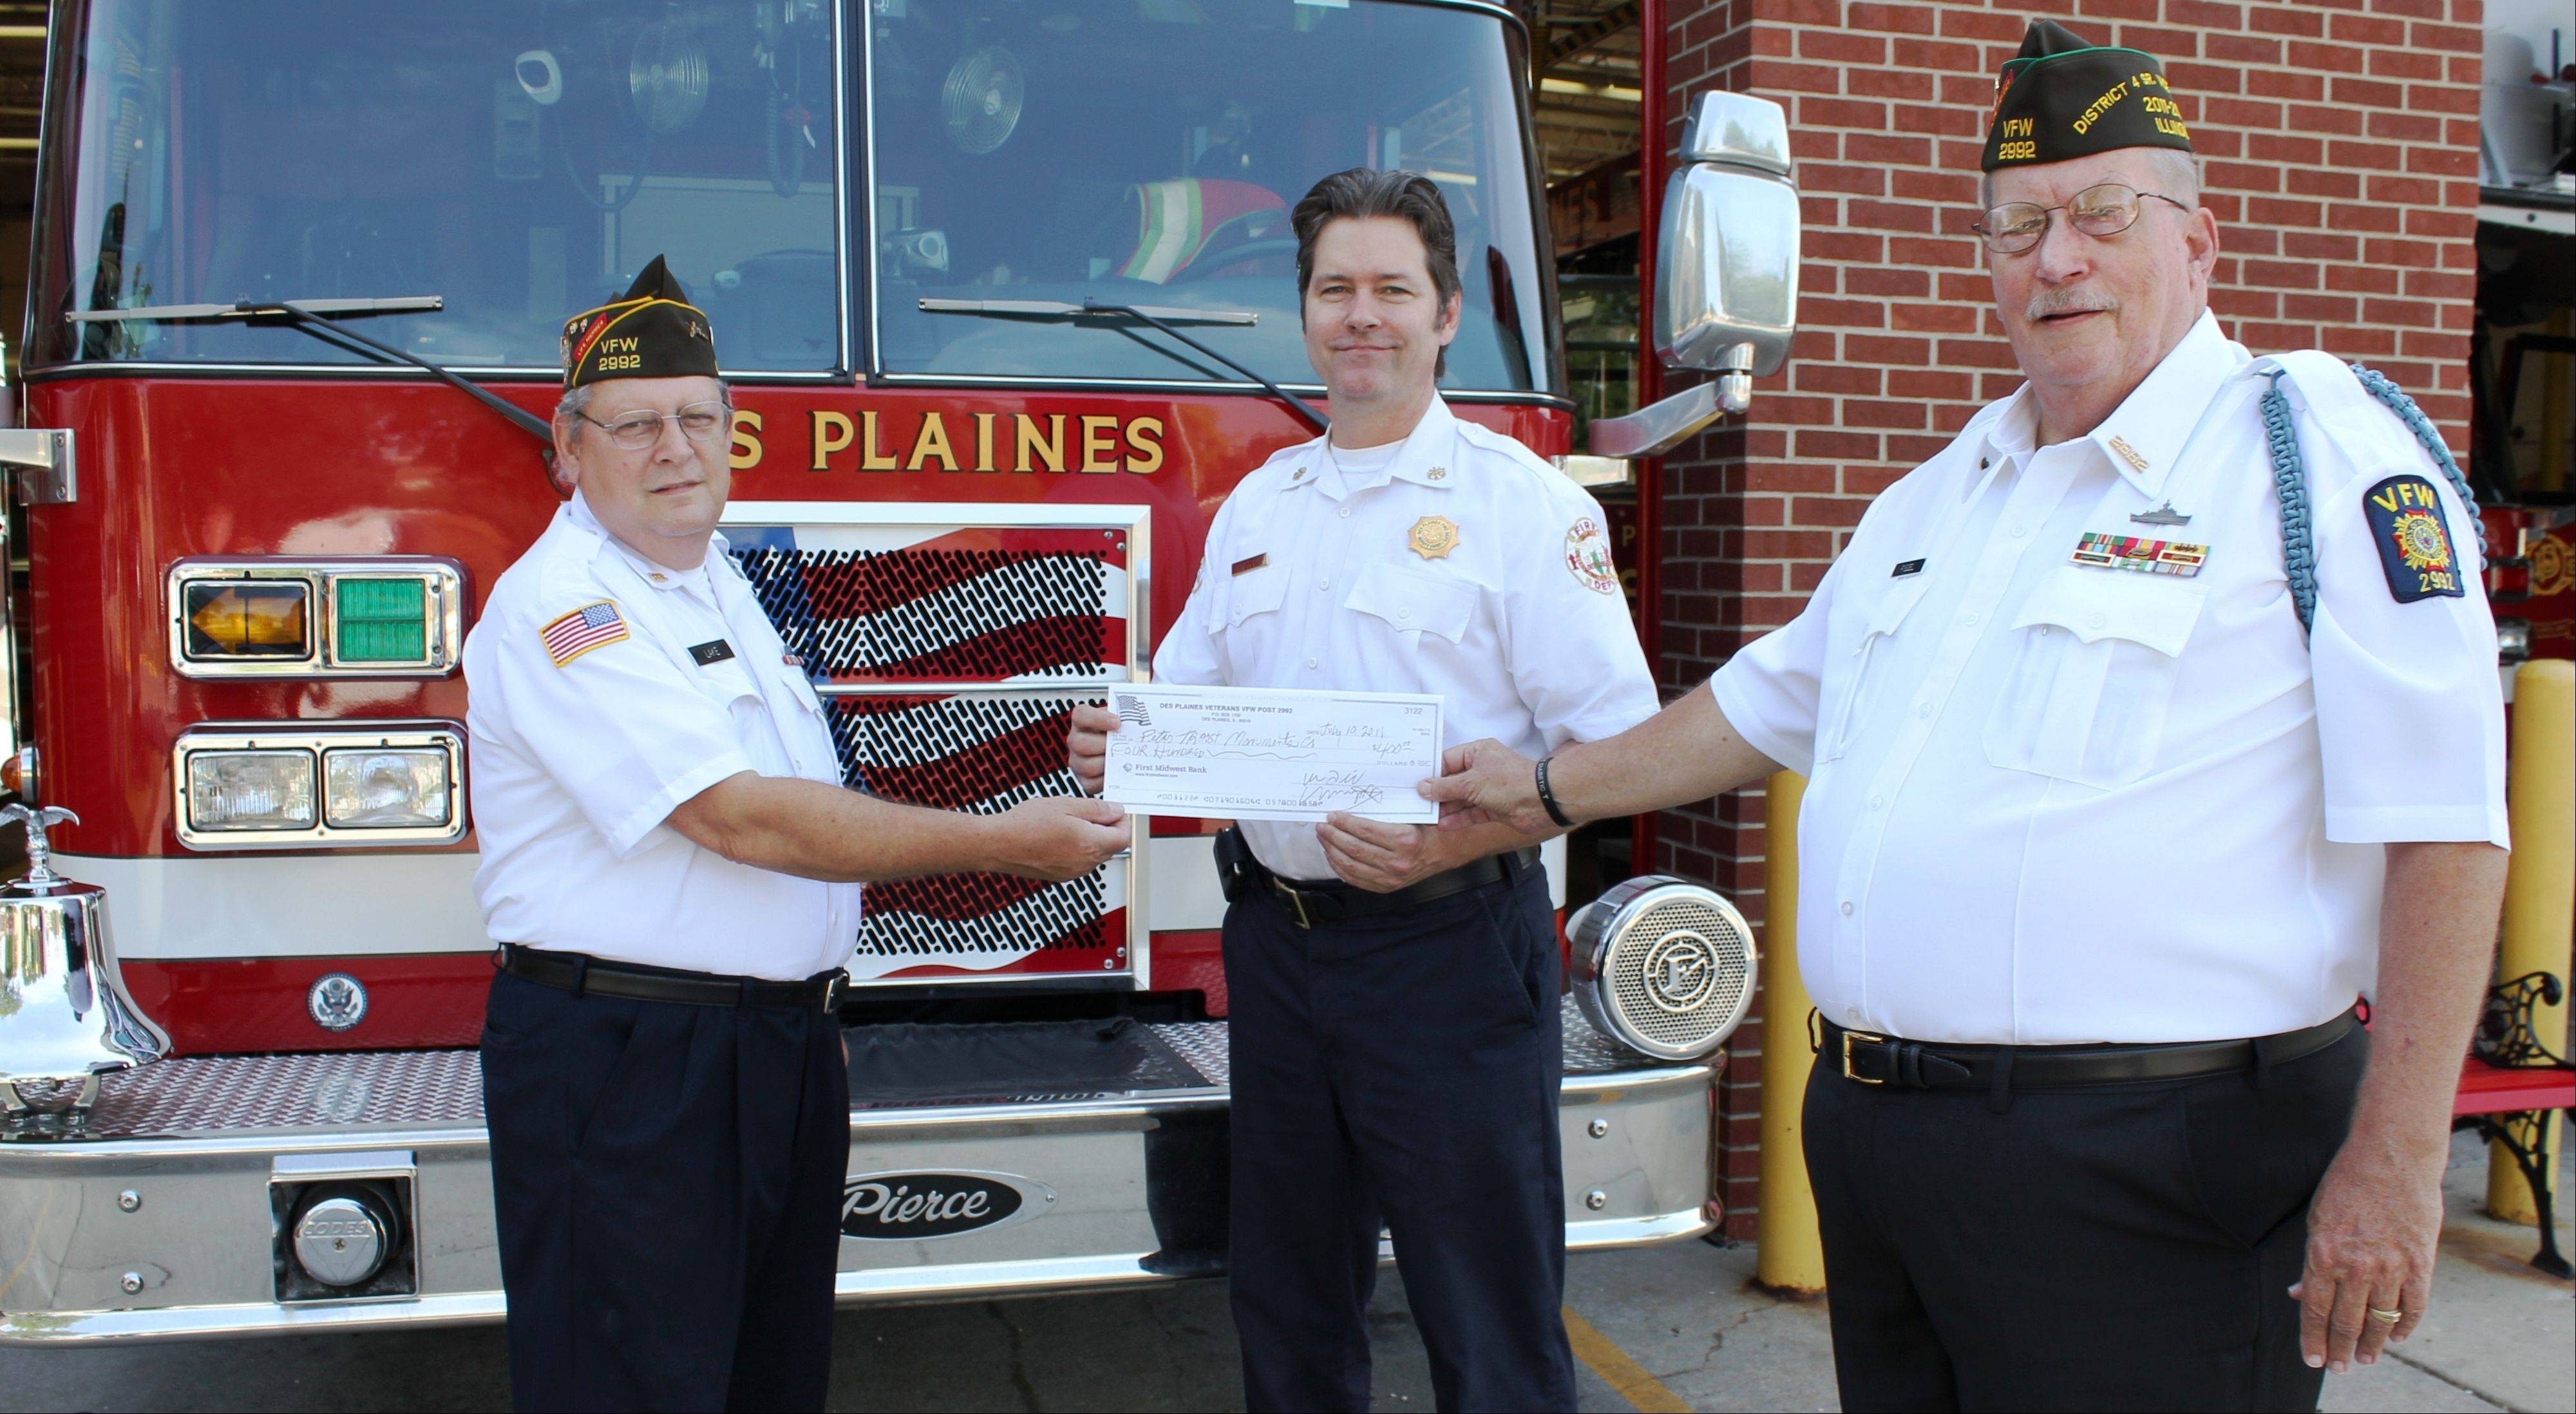 Pictured, from left, Des Plaines VFW Post 2992 special projects Officer Mike Lake, Deputy Fire Chief Ron Eilken and VFW Commander William Fiegel pose for a photograph as the VFW Post presents a check for $400 to the Des Plaines Fire Department. According to Deputy Chief Eilken, the fire department hopes to have the 9/11 Memorial in place for this year's Sept. 11, 2011, ceremony at city hall.